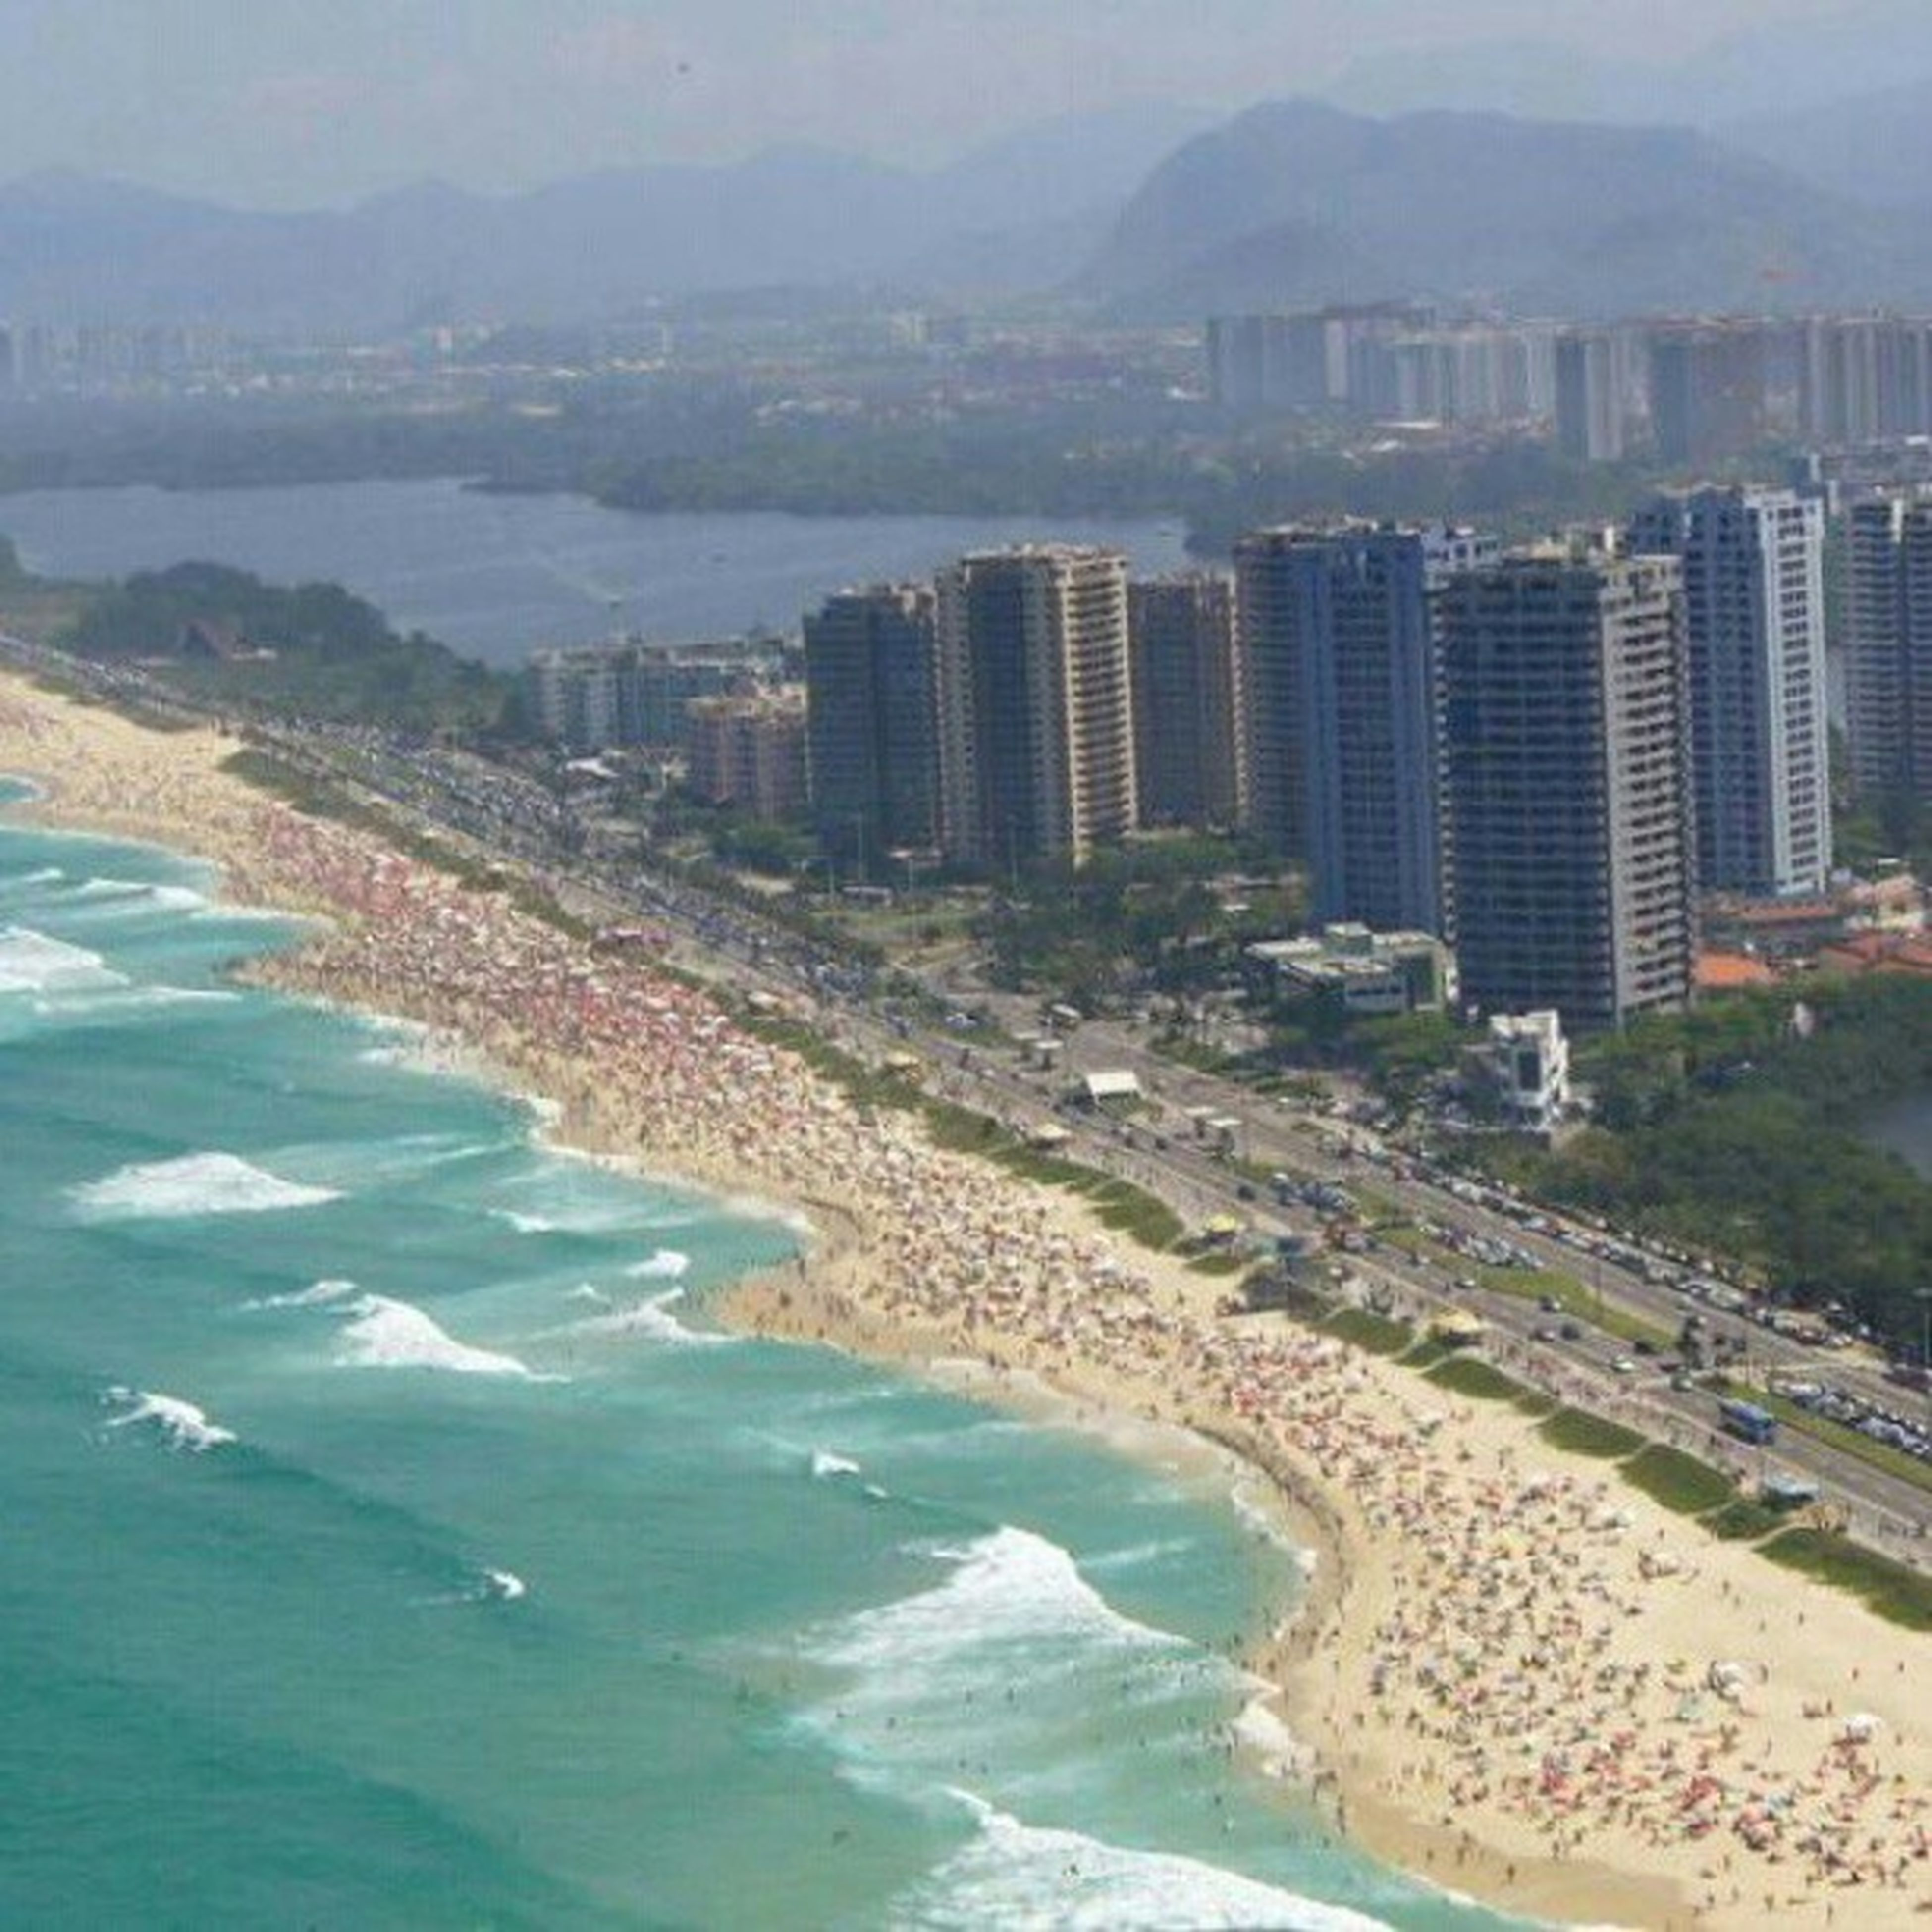 water, sea, beach, coastline, built structure, architecture, mountain, scenics, high angle view, shore, building exterior, sand, tranquil scene, tranquility, nature, beauty in nature, cityscape, city, aerial view, surf